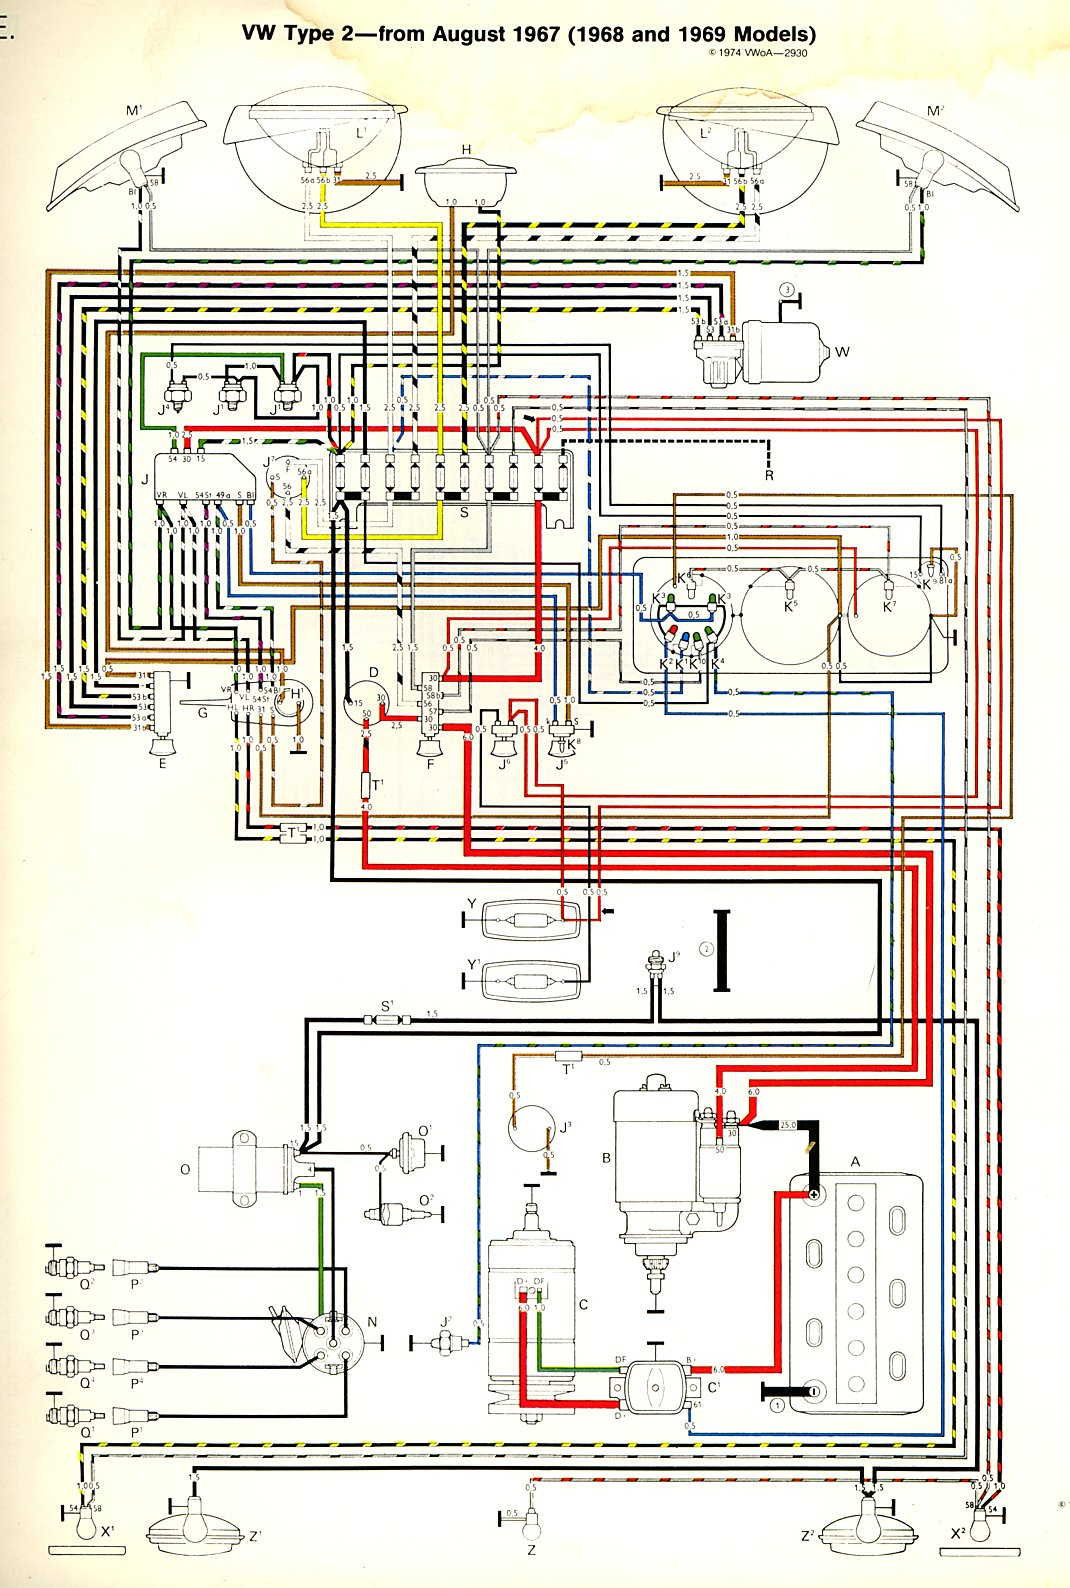 71 bug wiring diagram wiring diagram blogvw wire diagram wiring diagram 1970 bug interior 71 bug wiring diagram